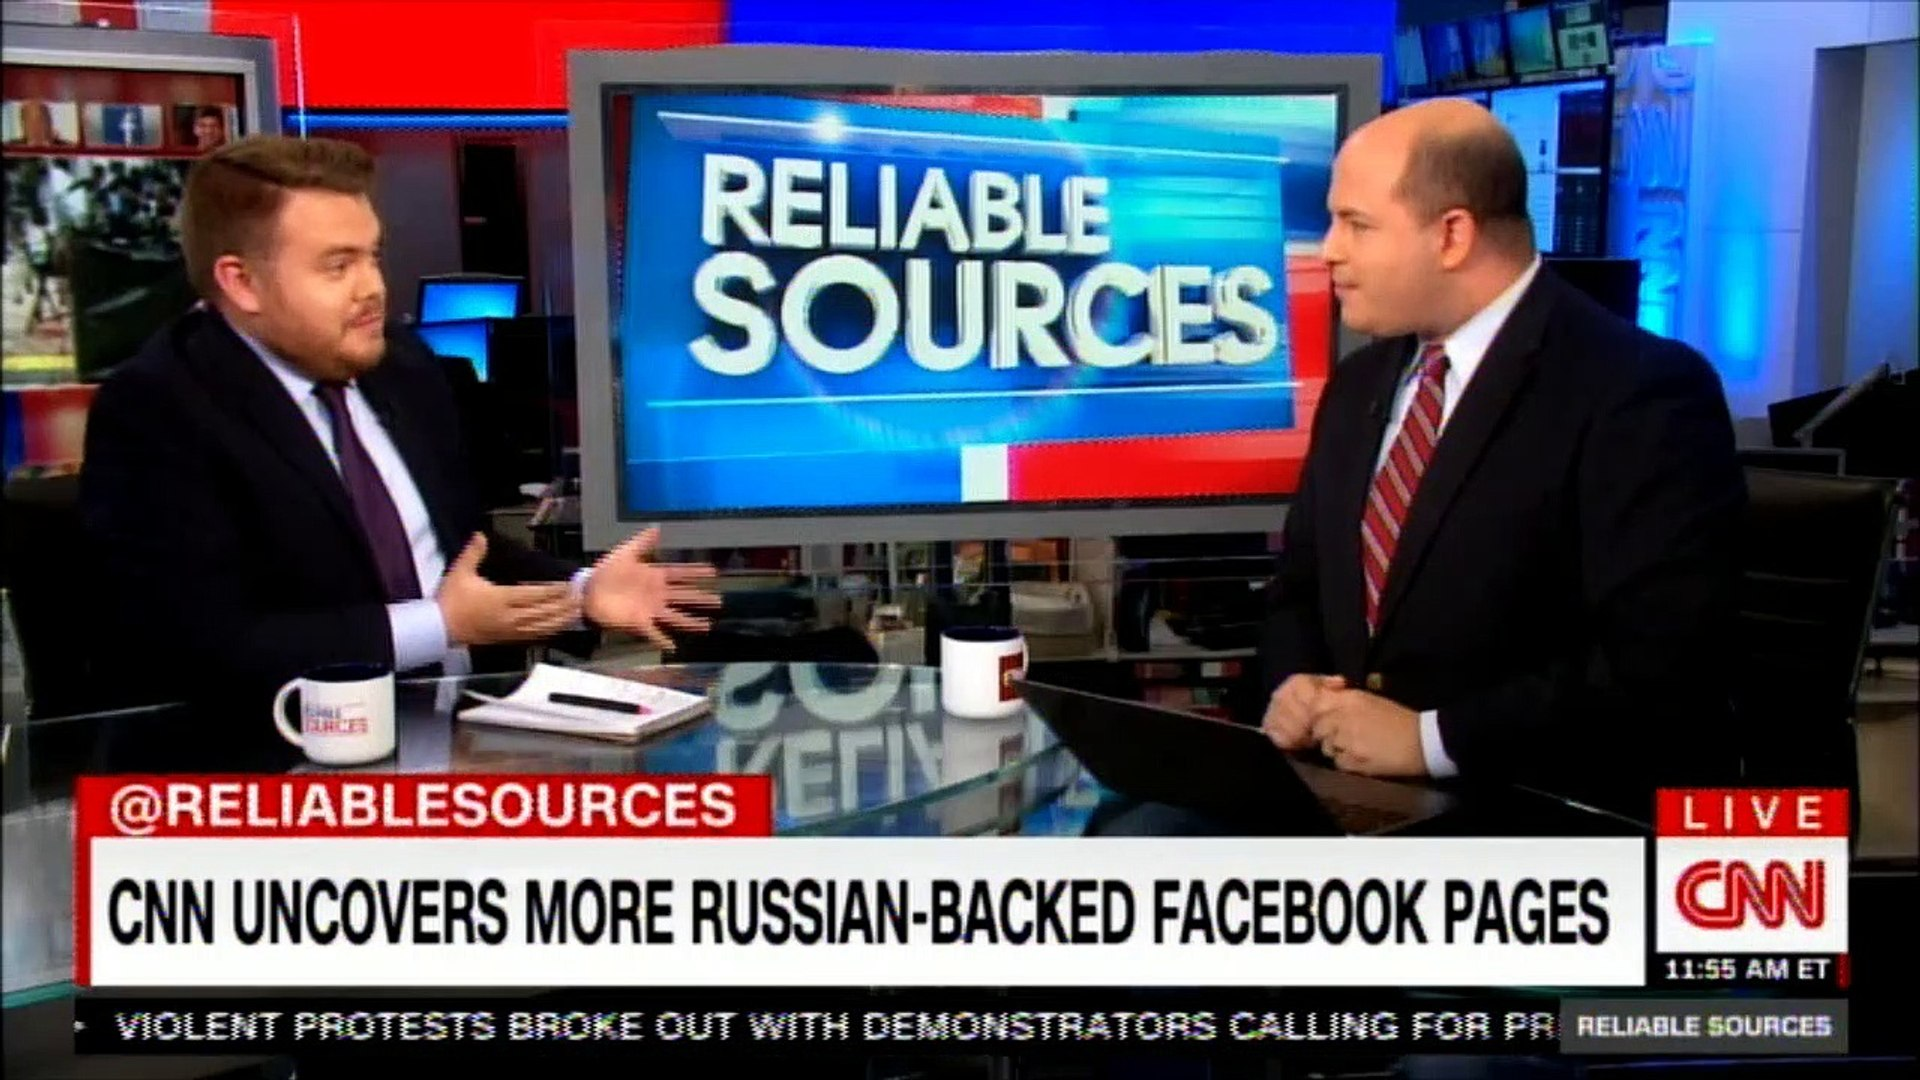 CNN uncovers more Russian-Backed Facebook pages. #CNN #Facebook #RussiaProbe #News #Breaking #Reliab